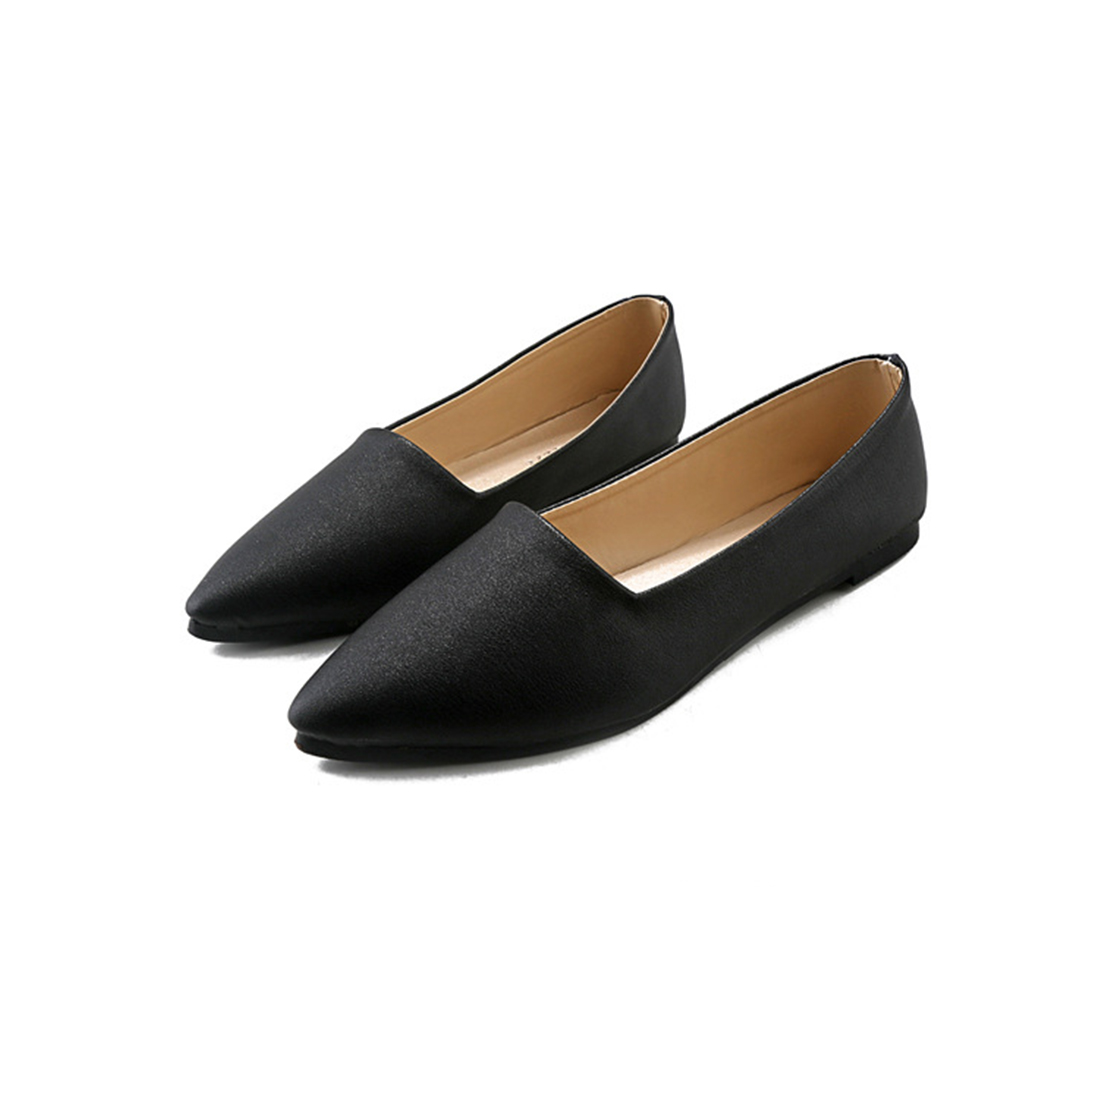 Women Flats 2017 Newest Pointy Patent Leather Loafers All Seasons Candy Colors Ballerina Slip On Shoes